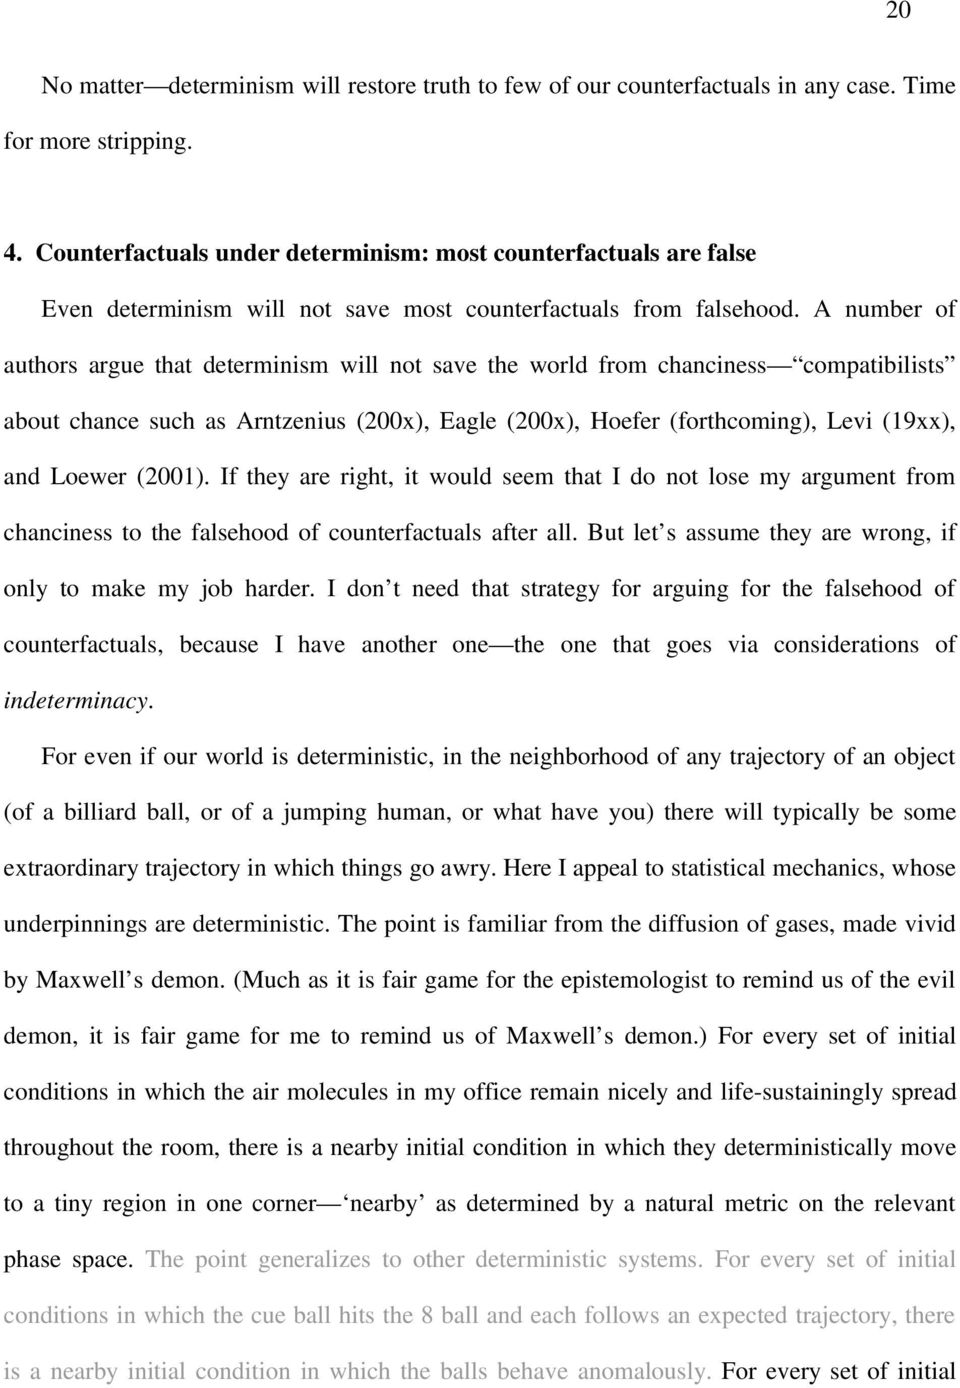 A number of authors argue that determinism will not save the world from chanciness compatibilists about chance such as Arntzenius (200x), Eagle (200x), Hoefer (forthcoming), Levi (19xx), and Loewer